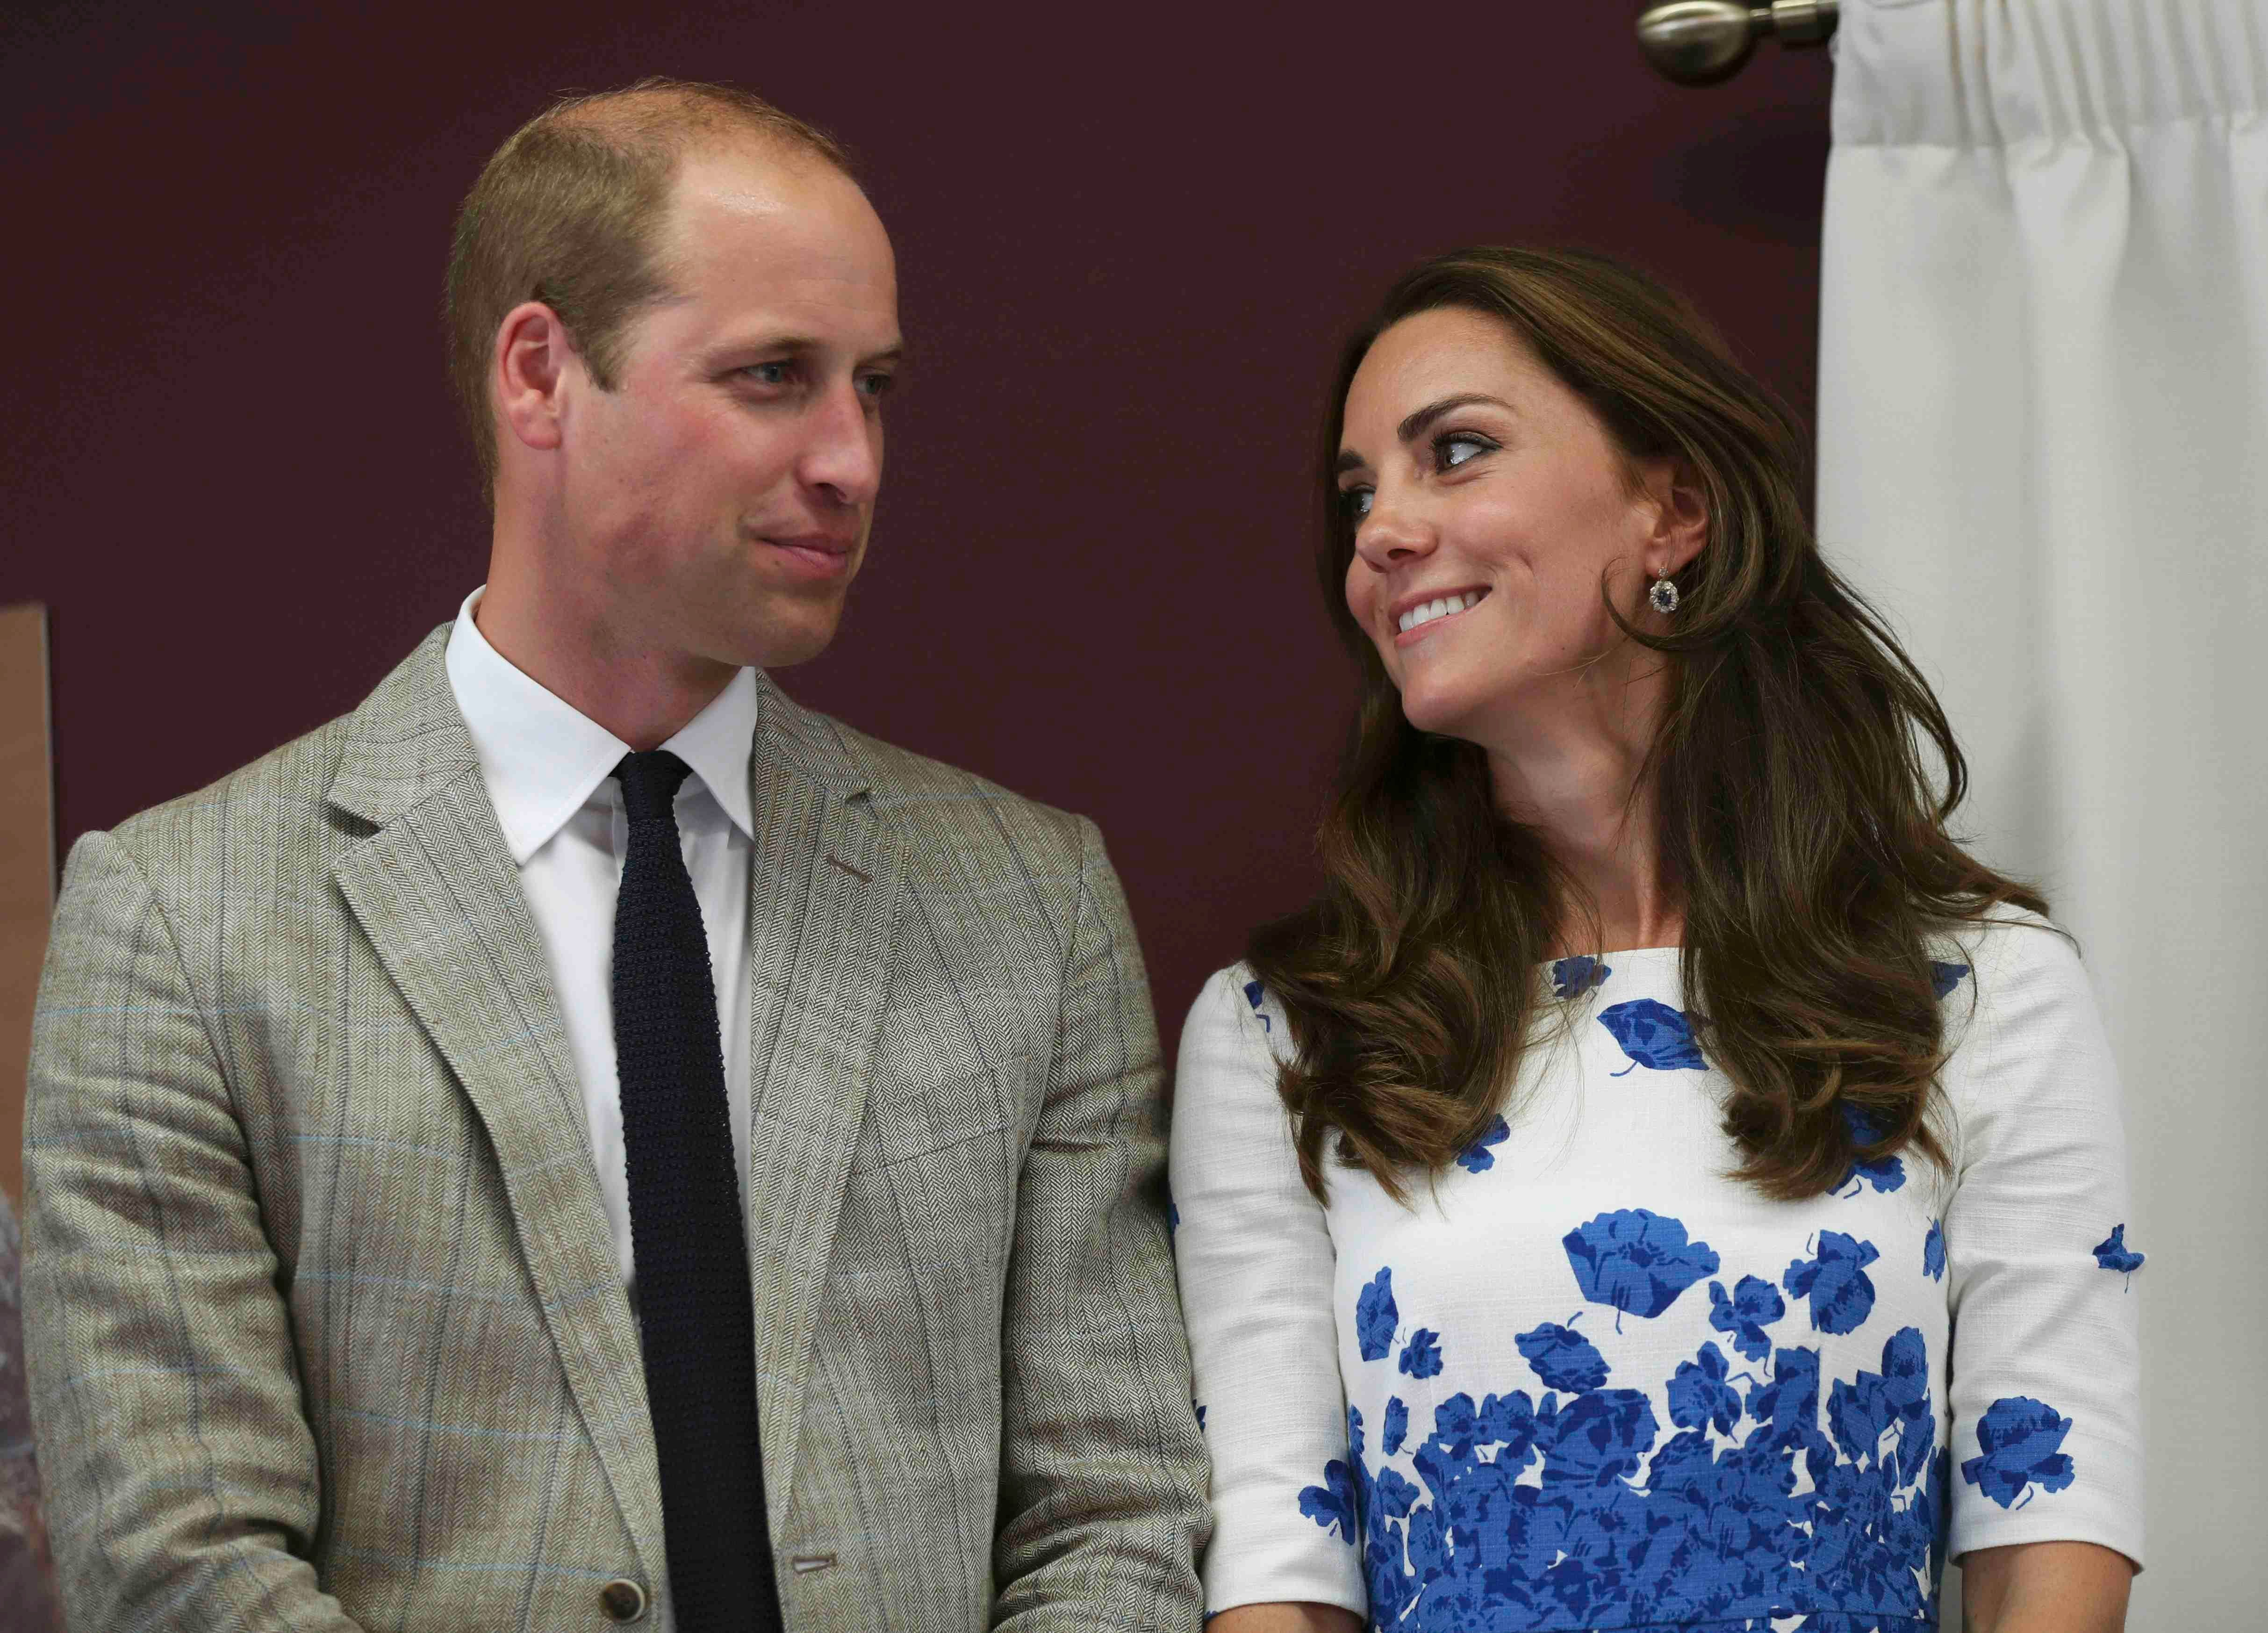 Prince William and Duchess of Kate during their visit to Keech Hospice Care on August 24, 2016, in Luton, England | Photo: Getty Images